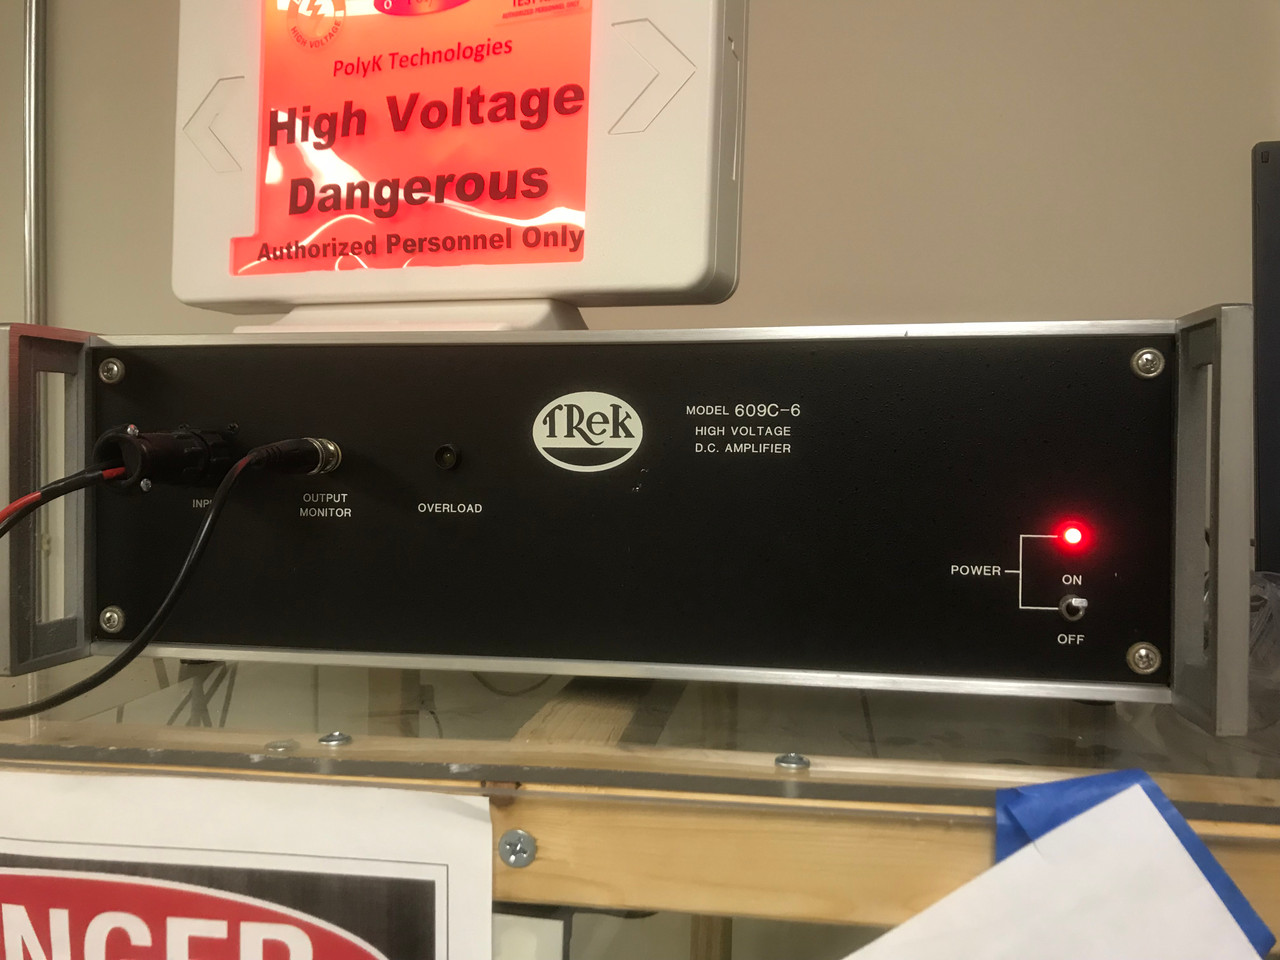 Trek 609C High Voltage Amplifier, Refurbished, with cables, manual and warranty